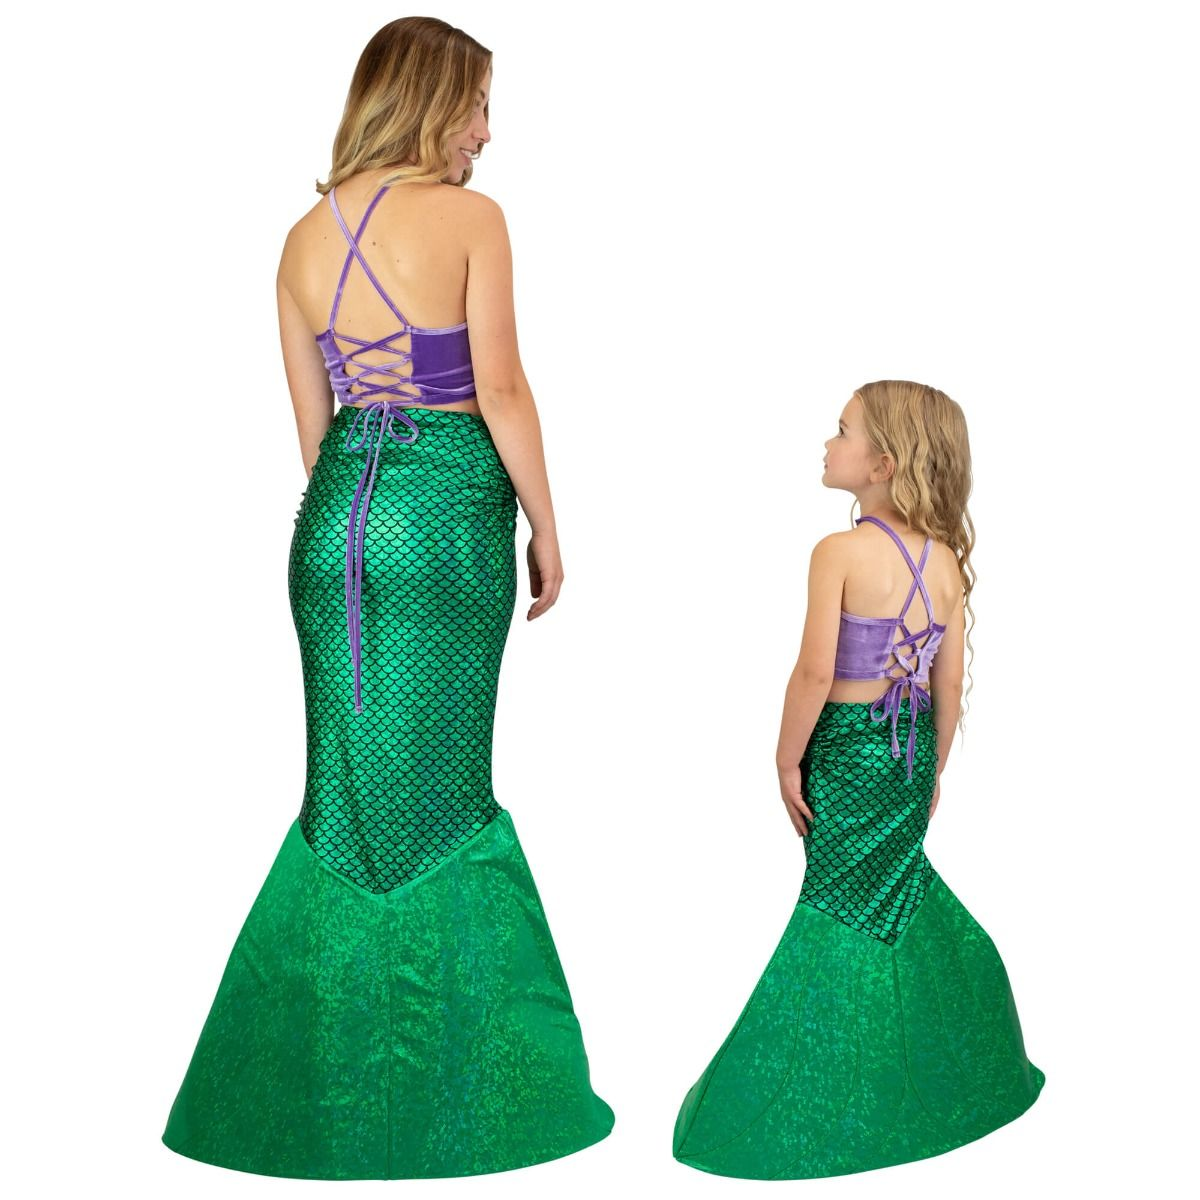 mermaid halloween costume for kids and adults | fin fun